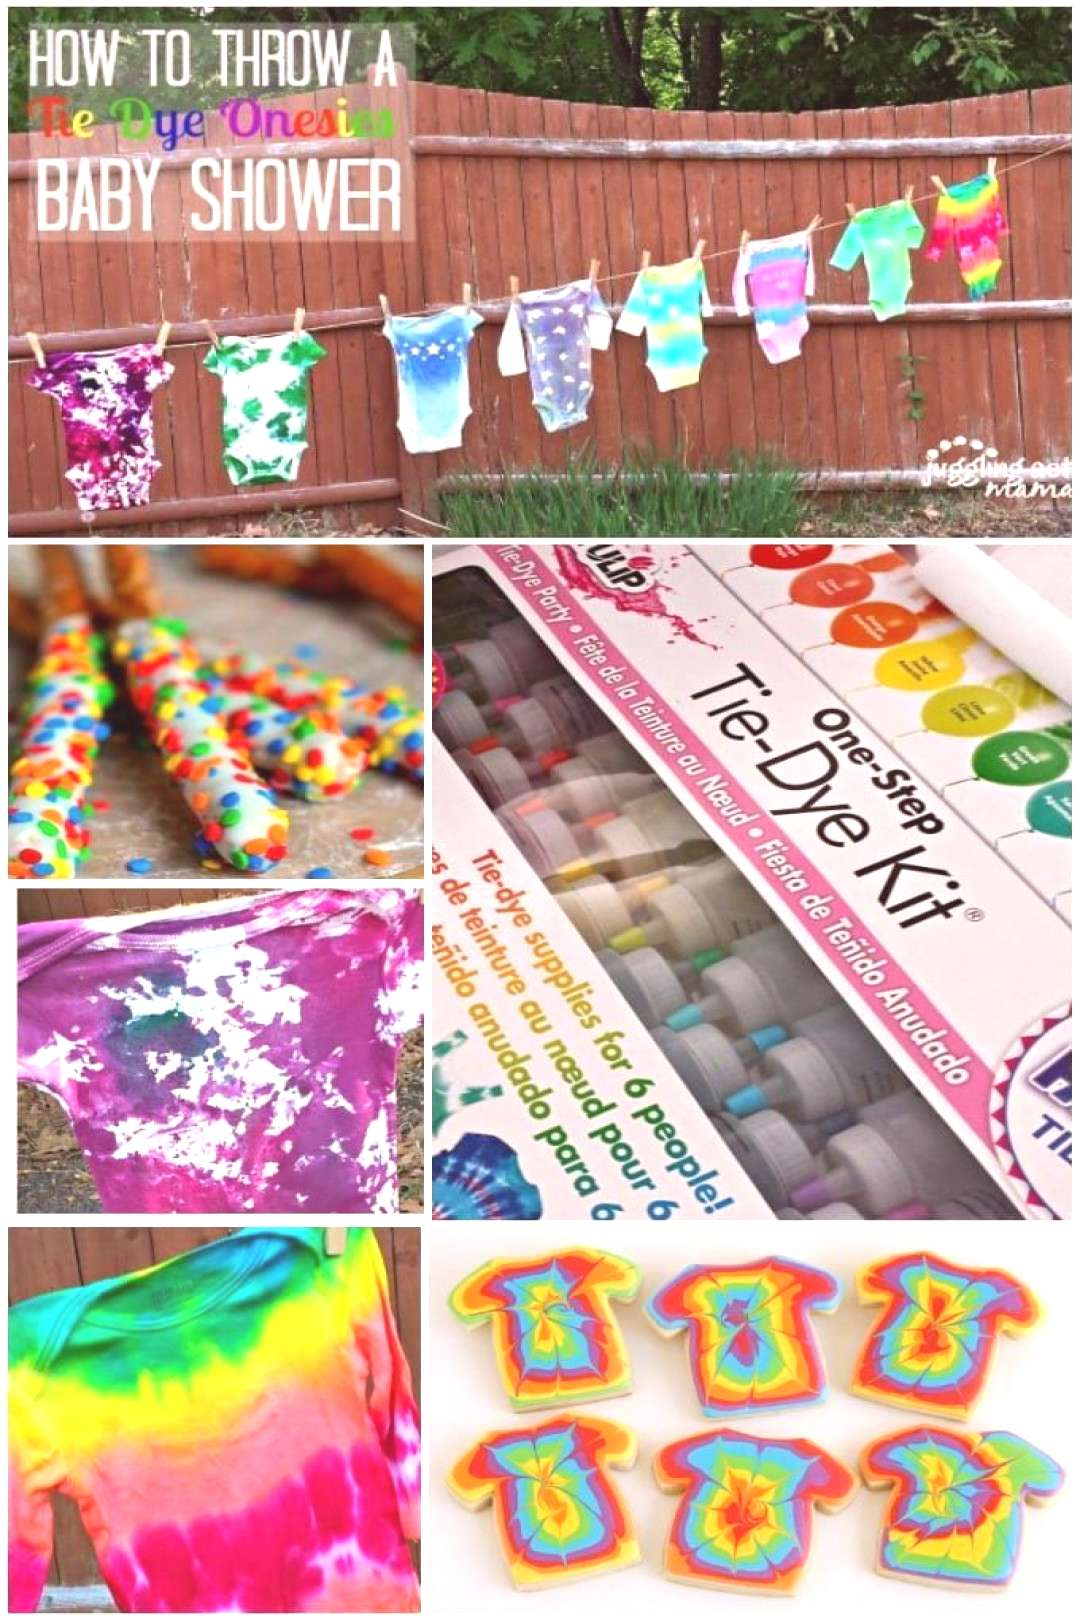 Summer Baby Shower with Tie Dye Onesies - Juggling Act Mama - Download the FREE printable invitati